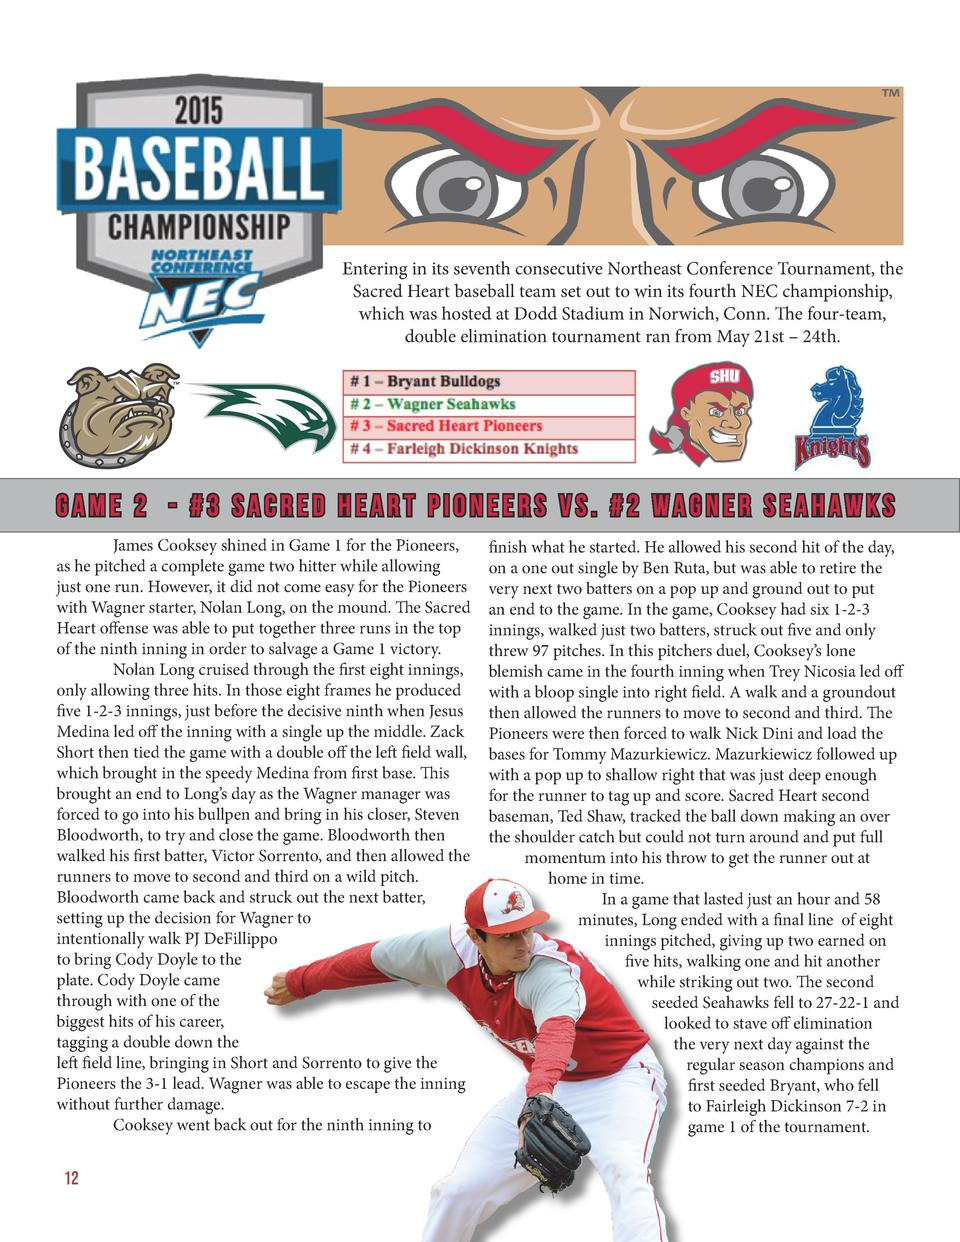 Entering in its seventh consecutive Northeast Conference Tournament, the Sacred Heart baseball team set out to win its fou...